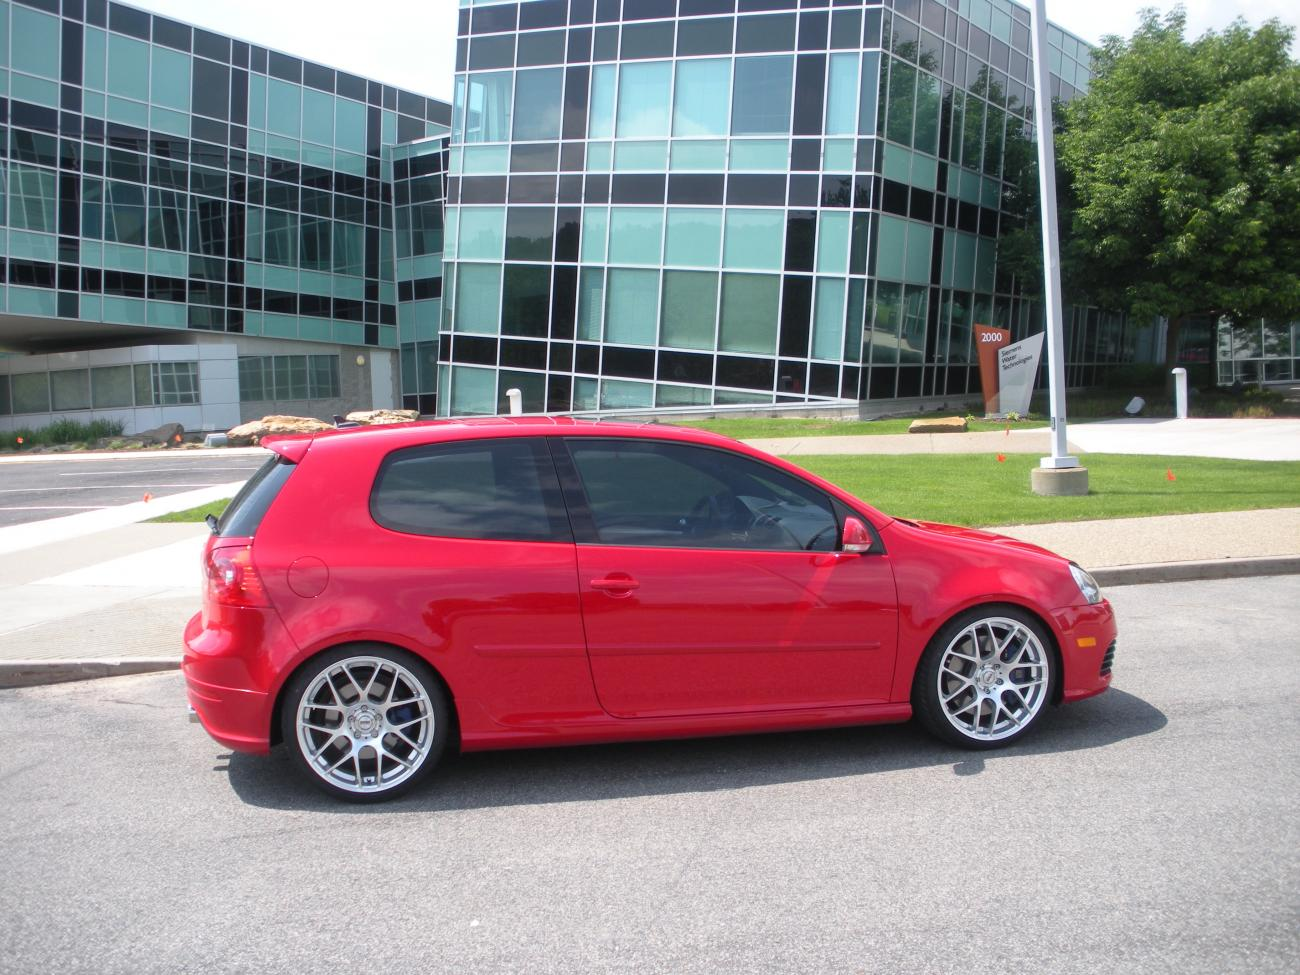 Window tint vw gti forum vw rabbit forum vw r32 for 10 percent window tint pictures